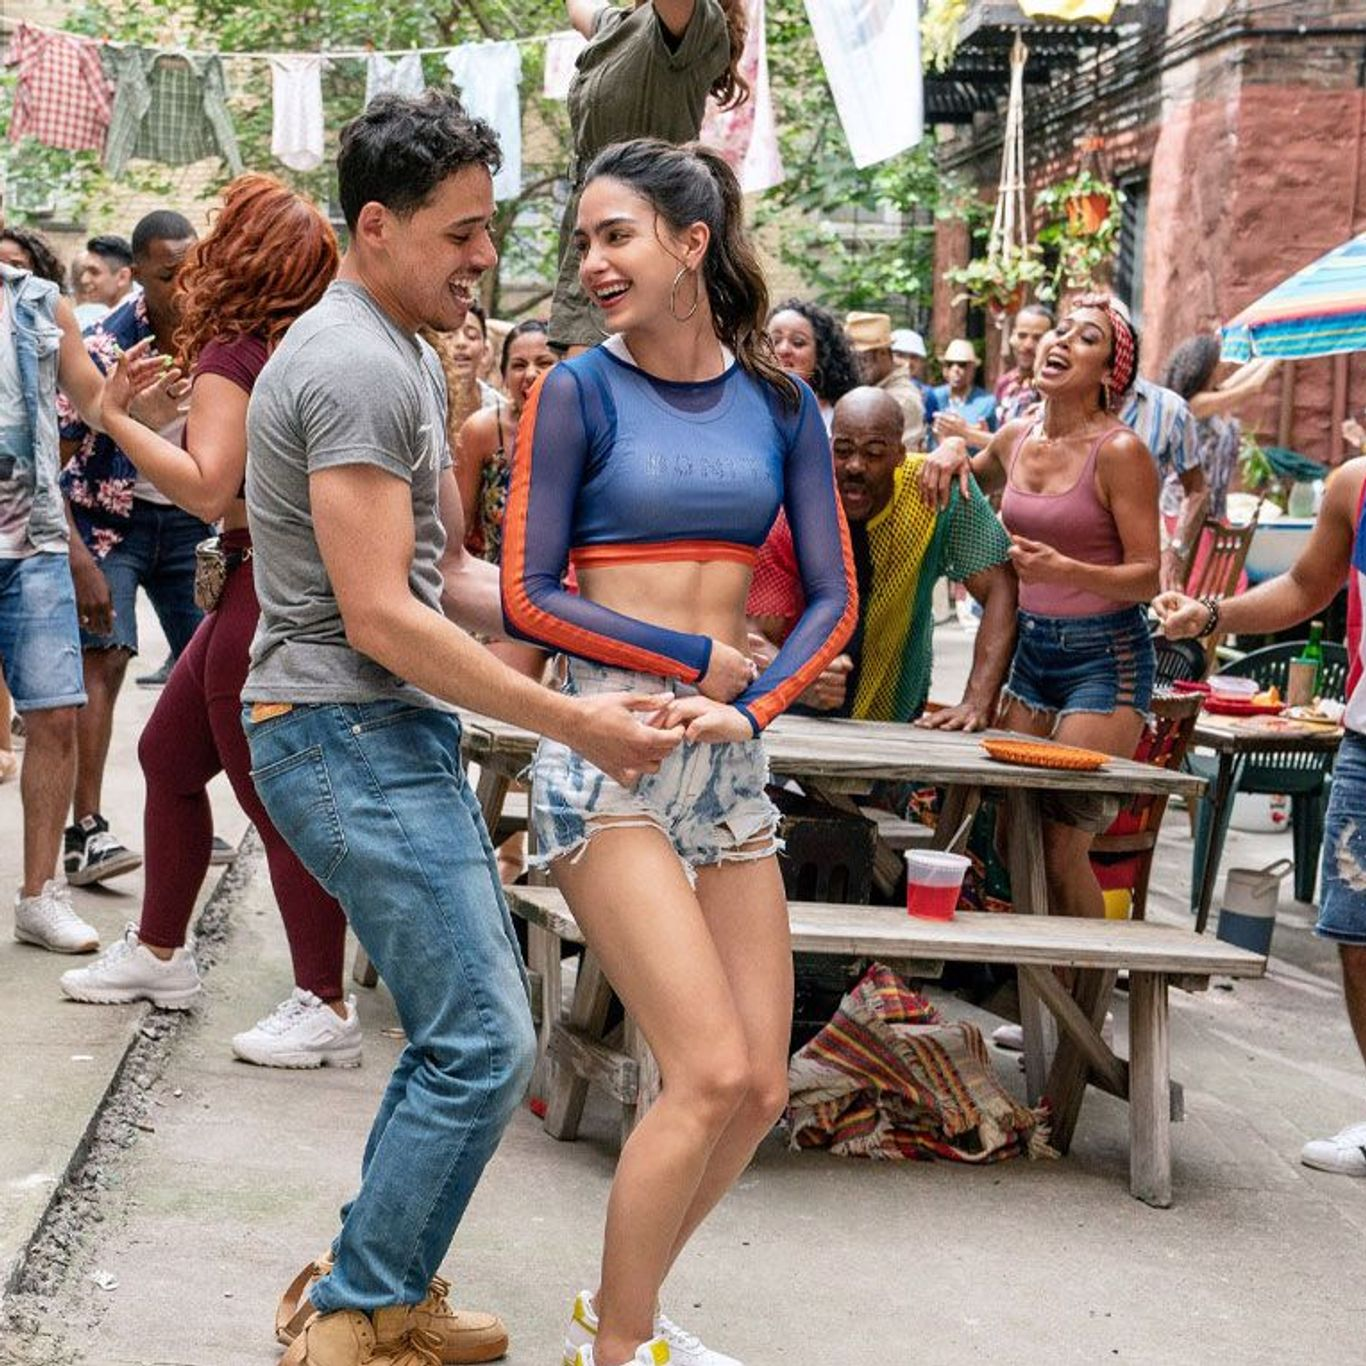 In the Heights - 9 Things to Know